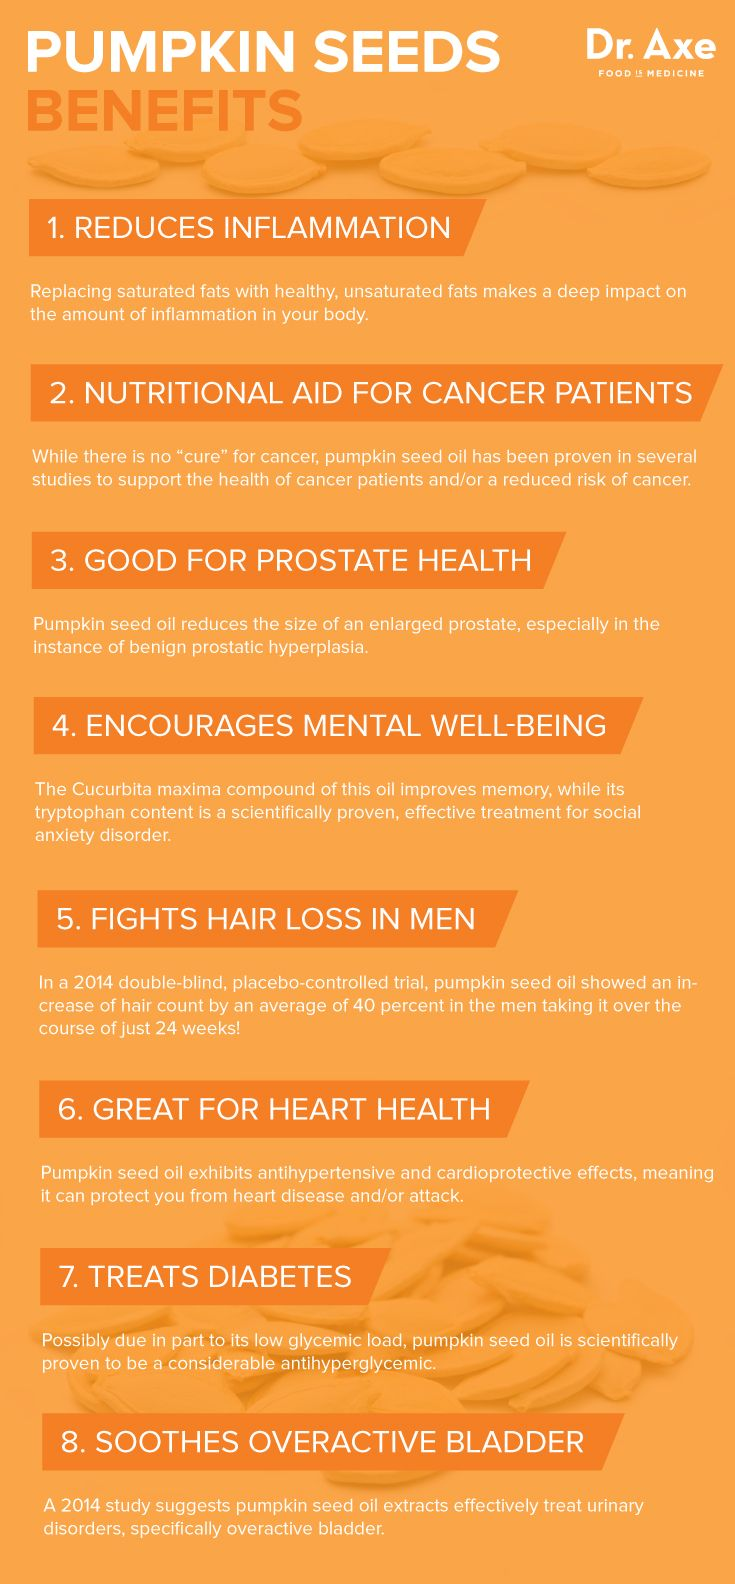 5. Fights Hair Loss in Men